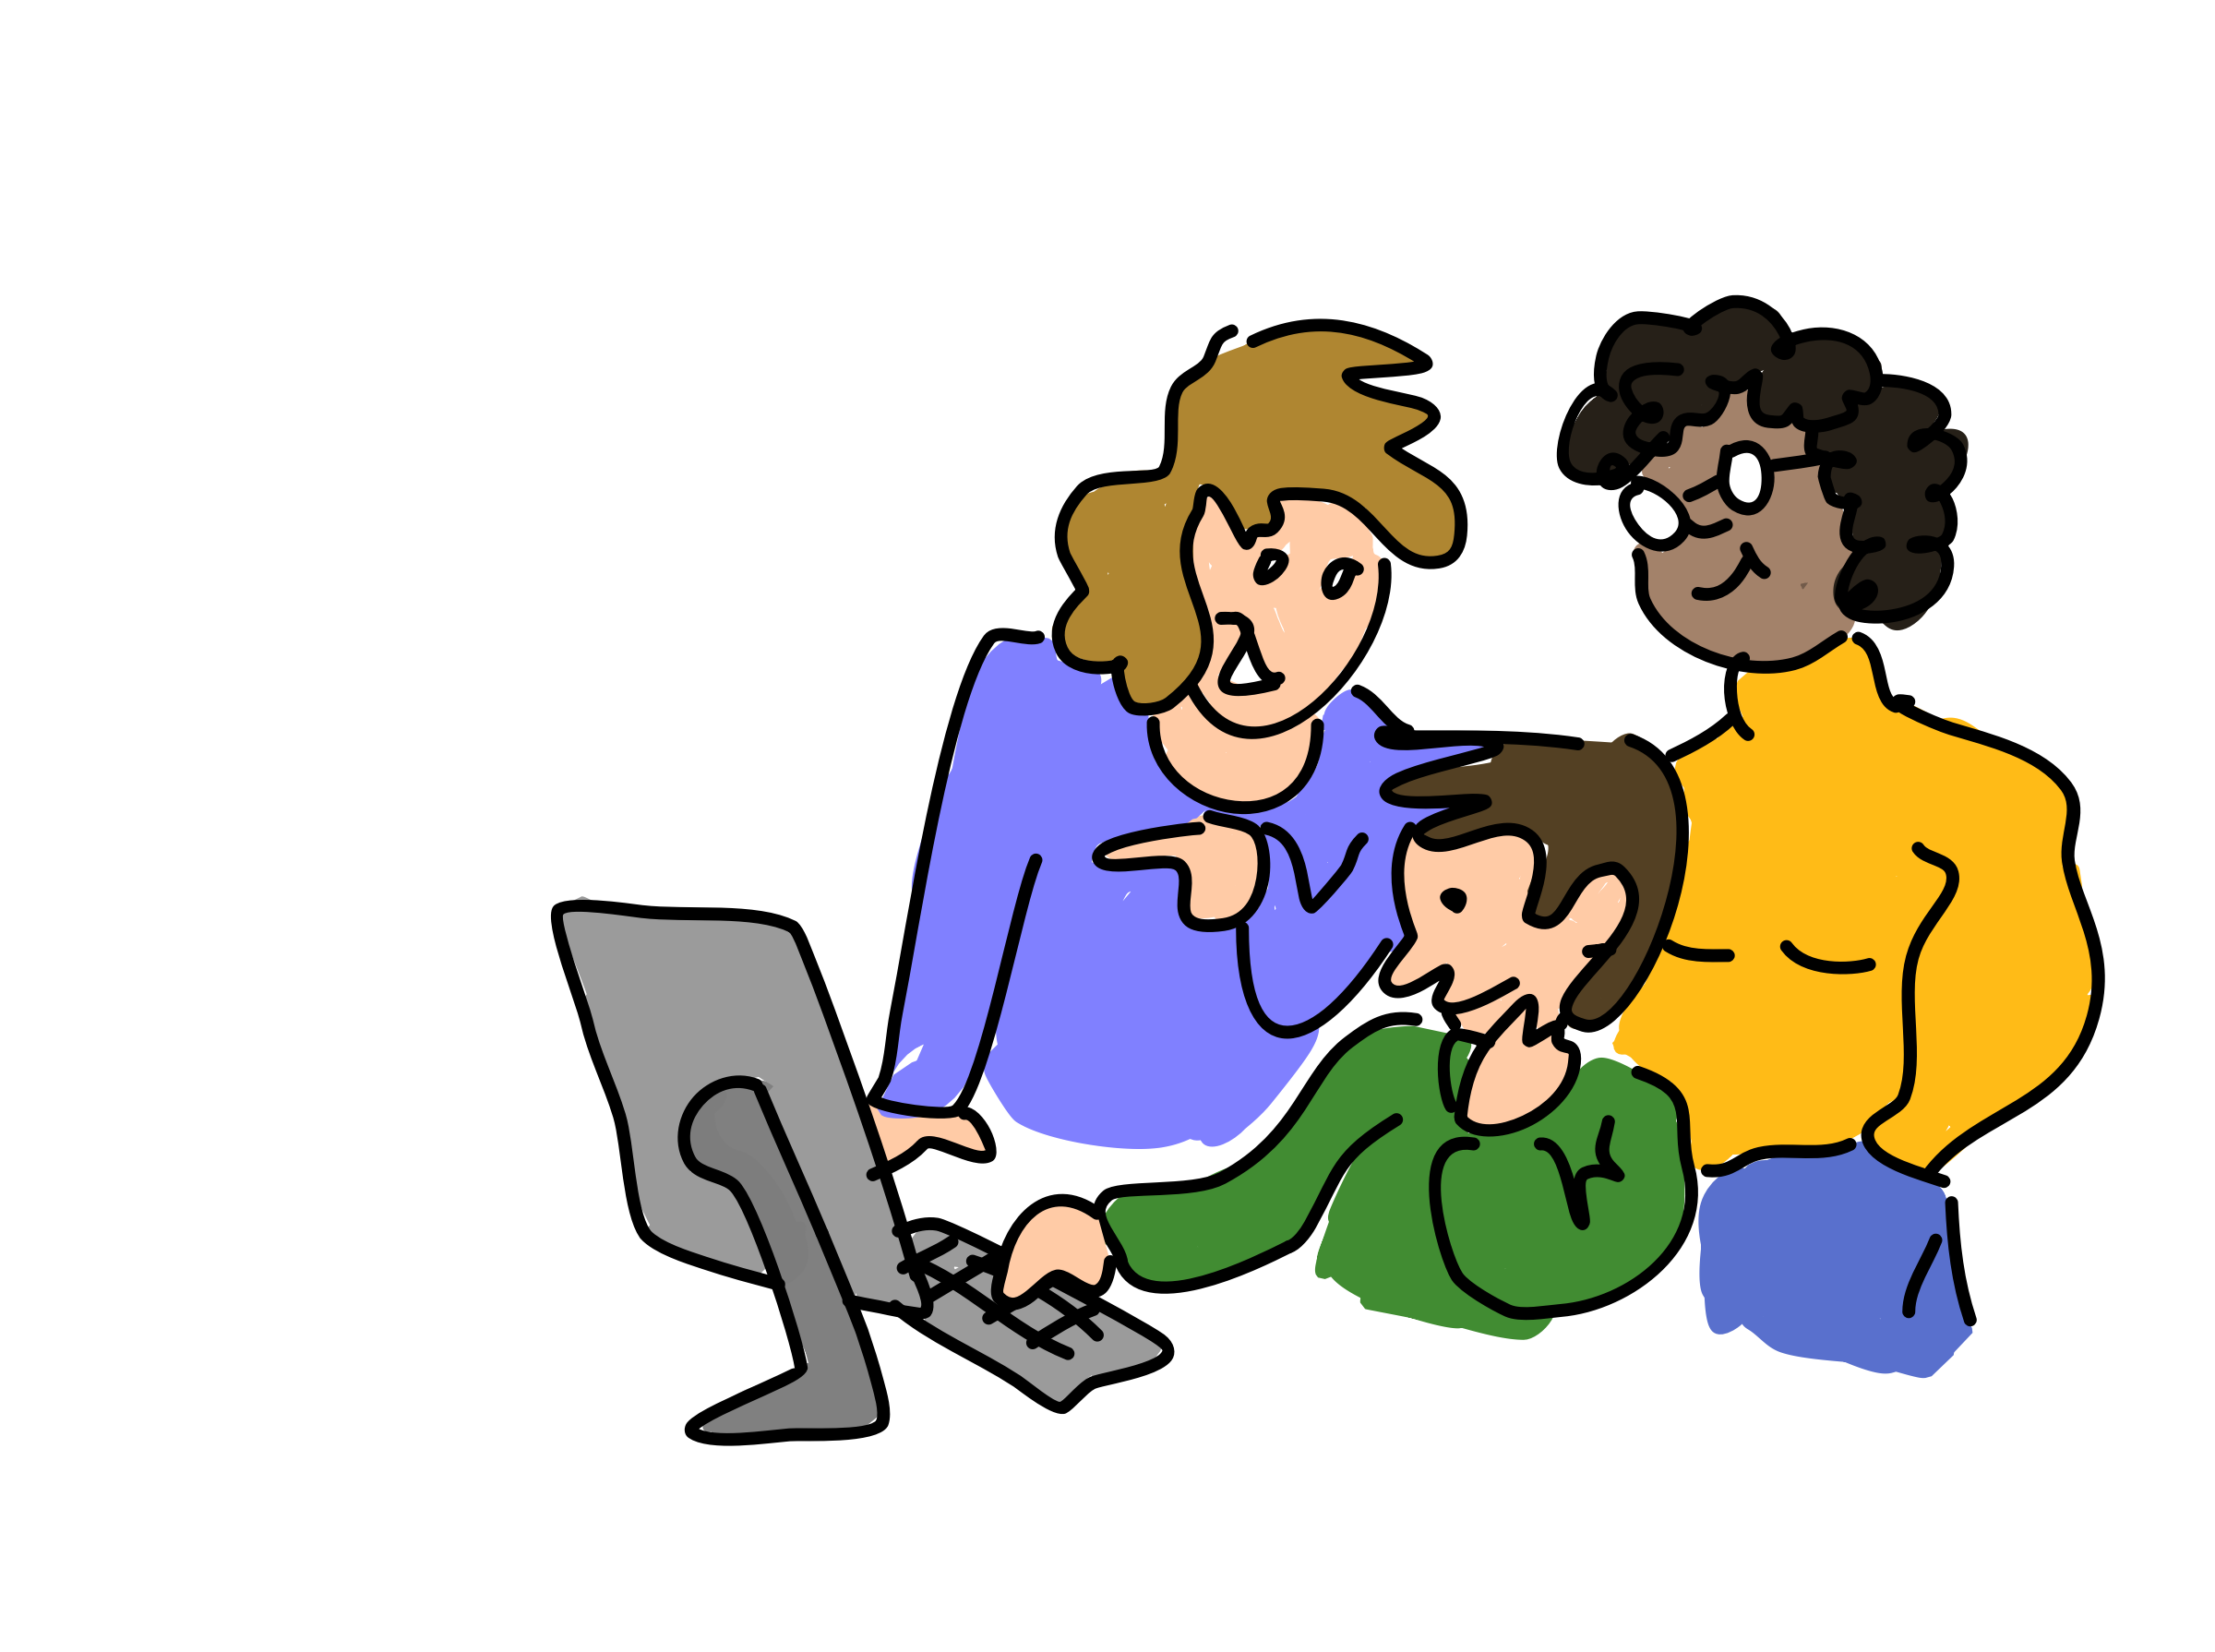 Three people working together vector clipart. Graphic by malmirk. - People Working Together PNG